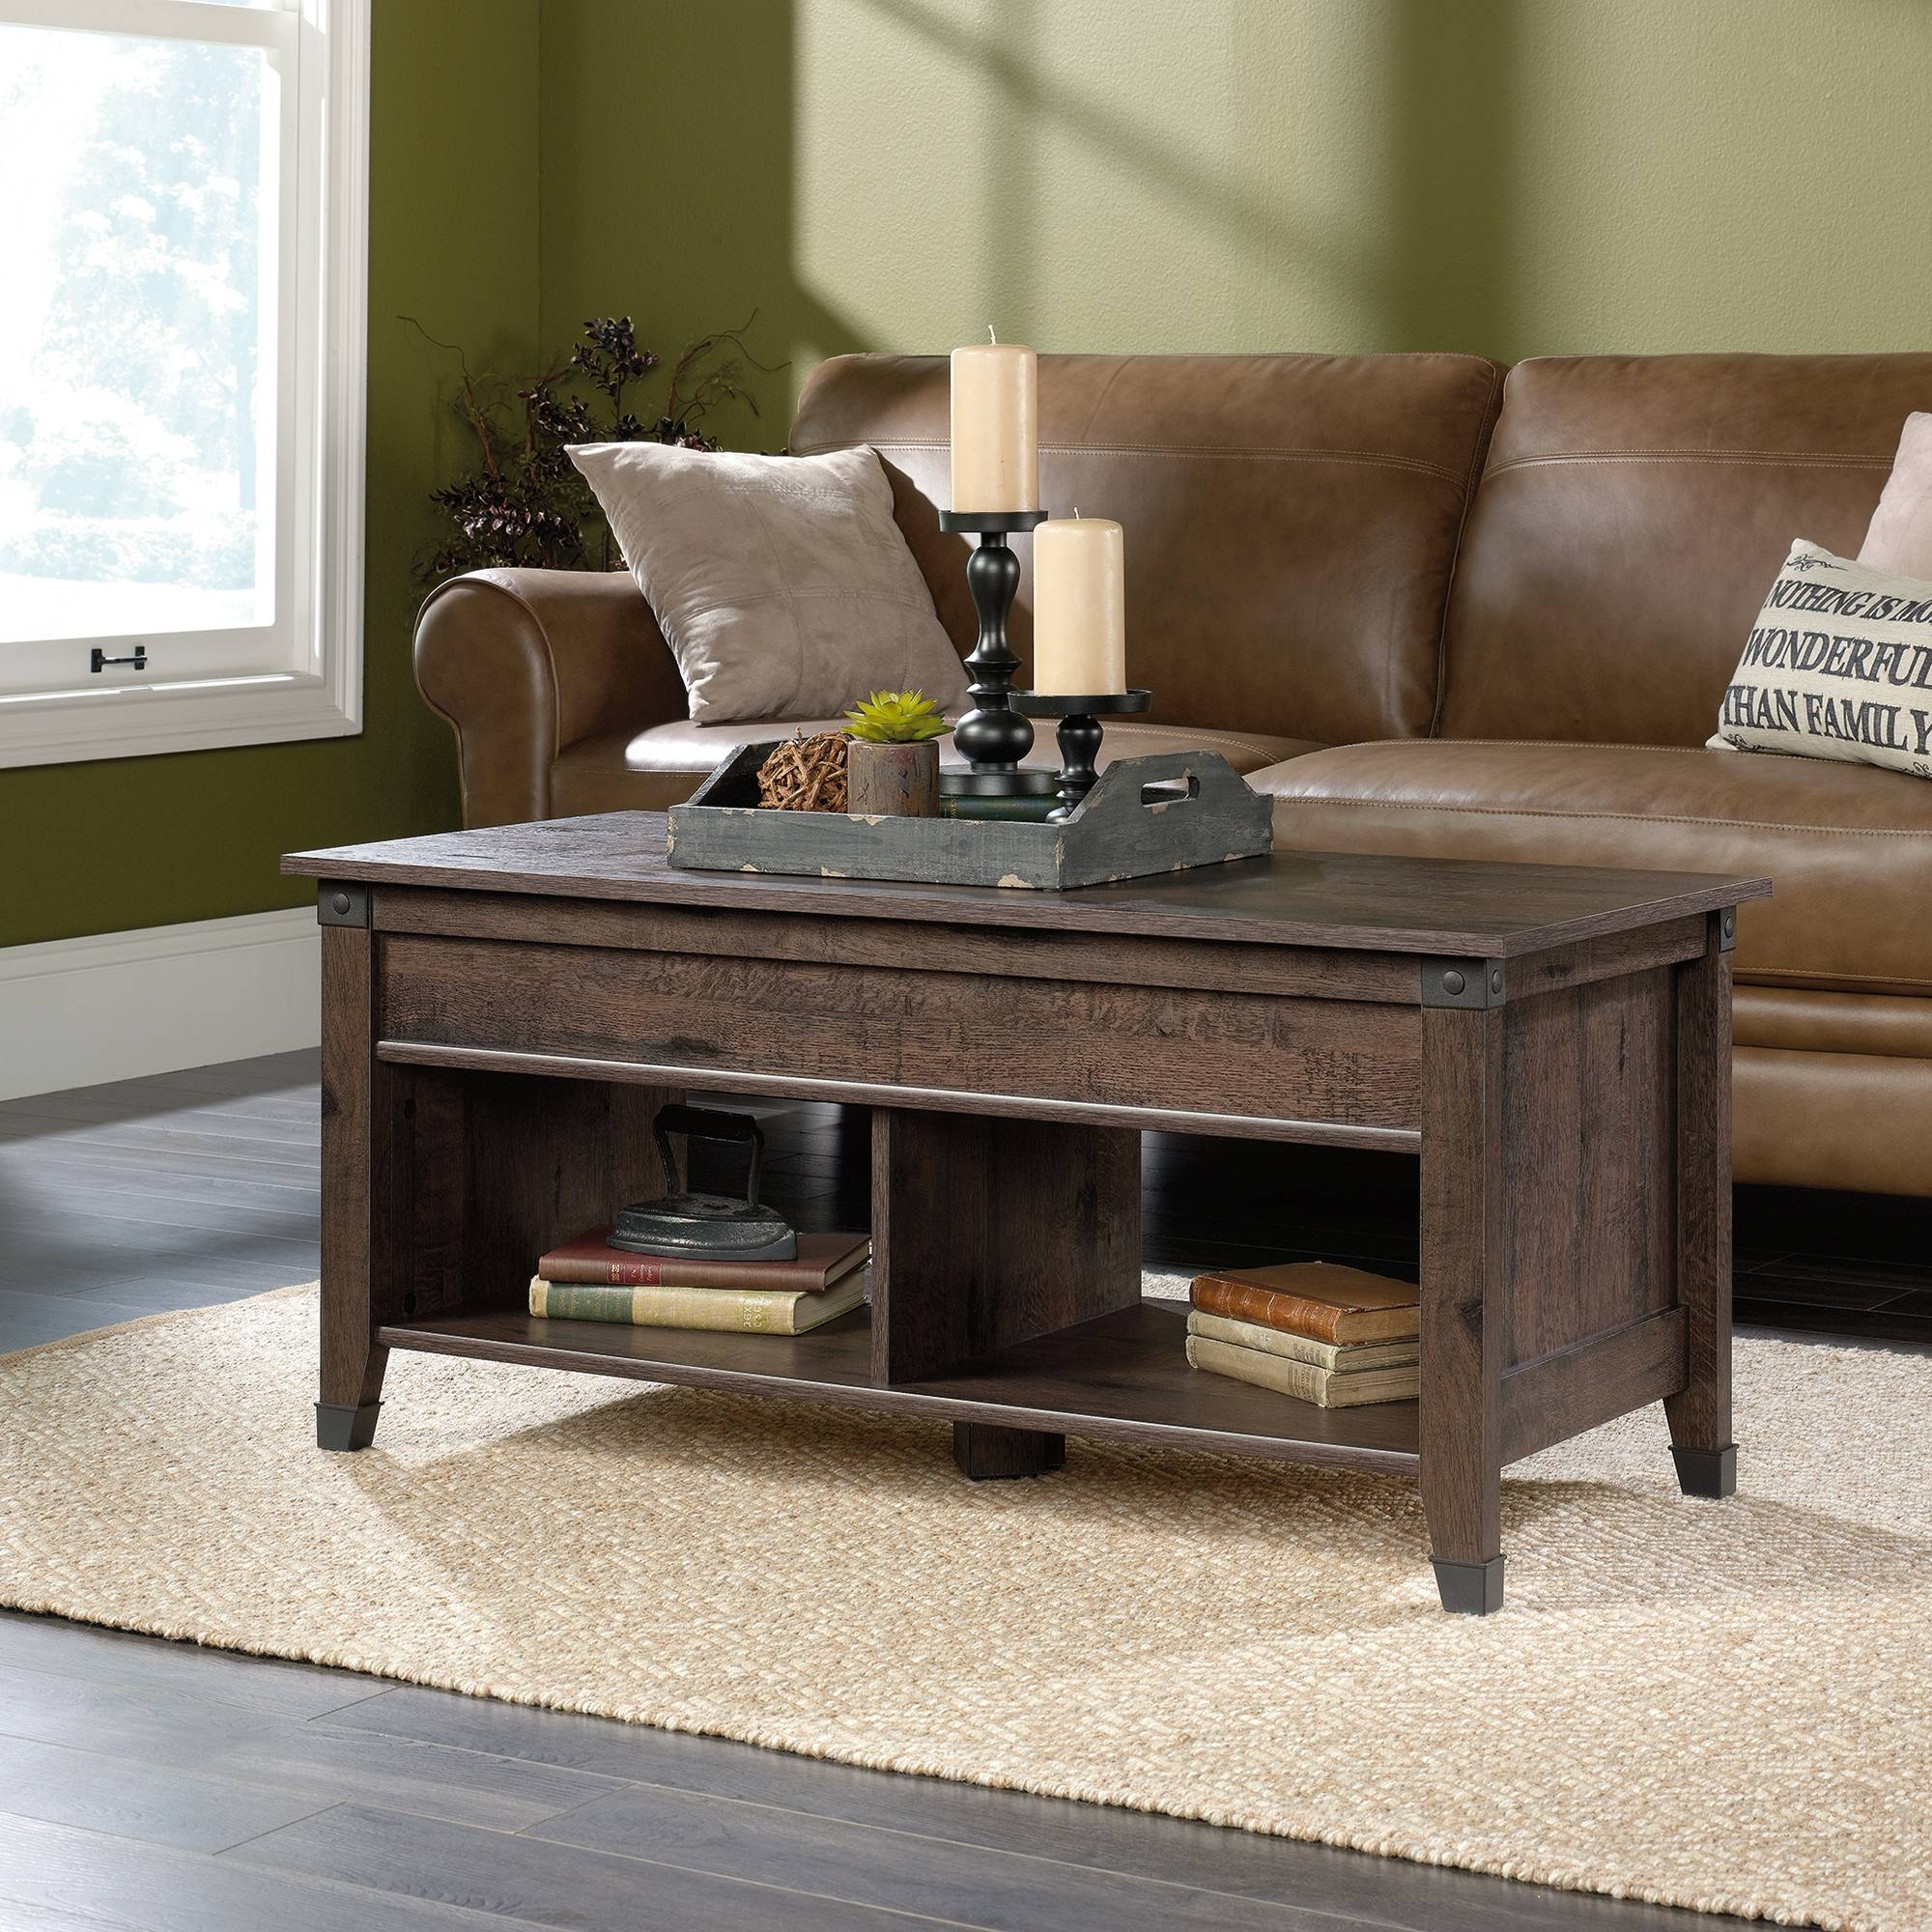 Carson Forge | Lift-Top Coffee Table | 420421 | Sauder pertaining to Lift Top Coffee Tables (Image 5 of 30)